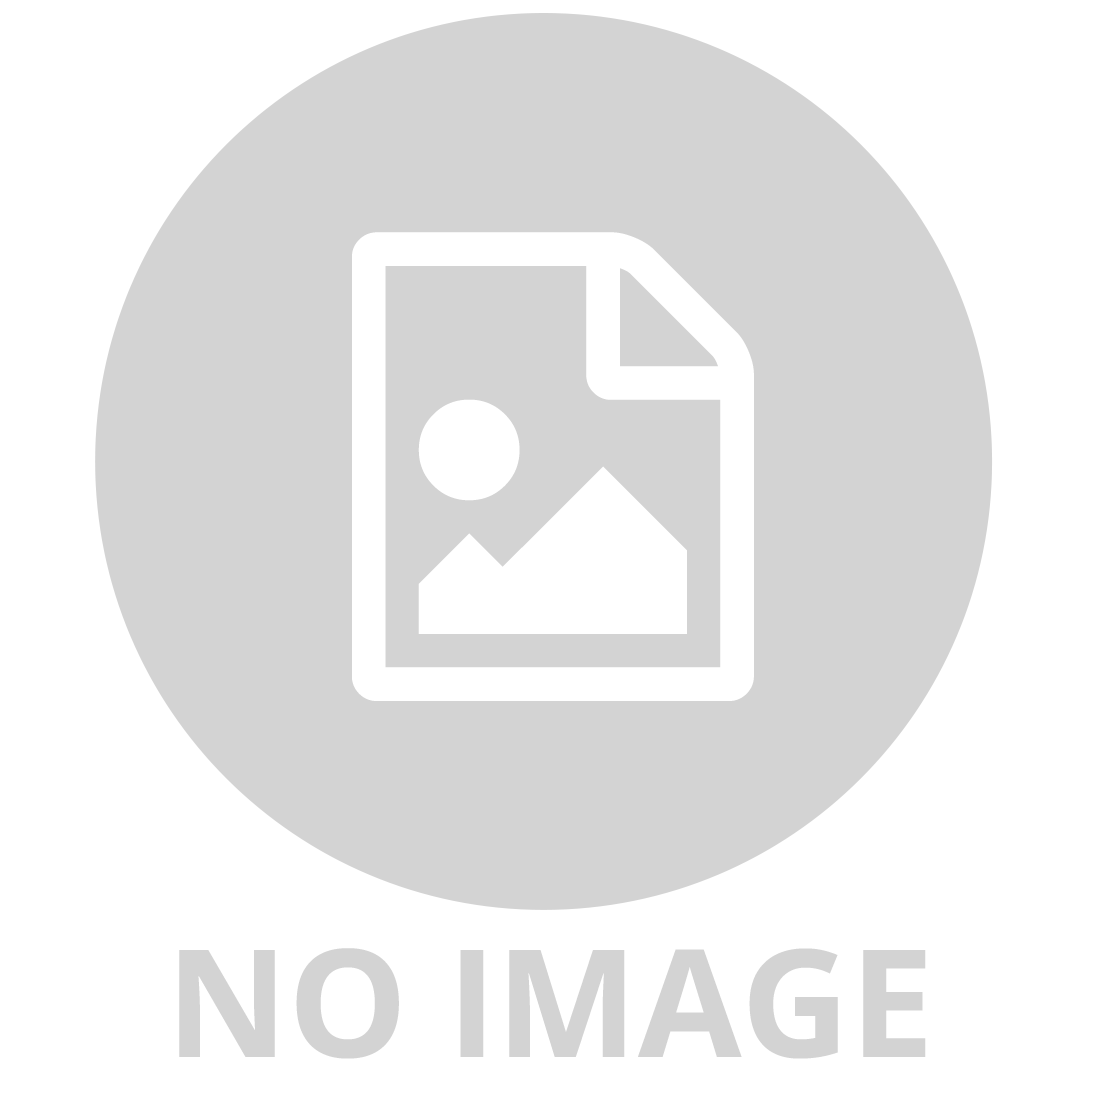 PHL4206-BC-NW 15w LED Spot B/Chrome 5K